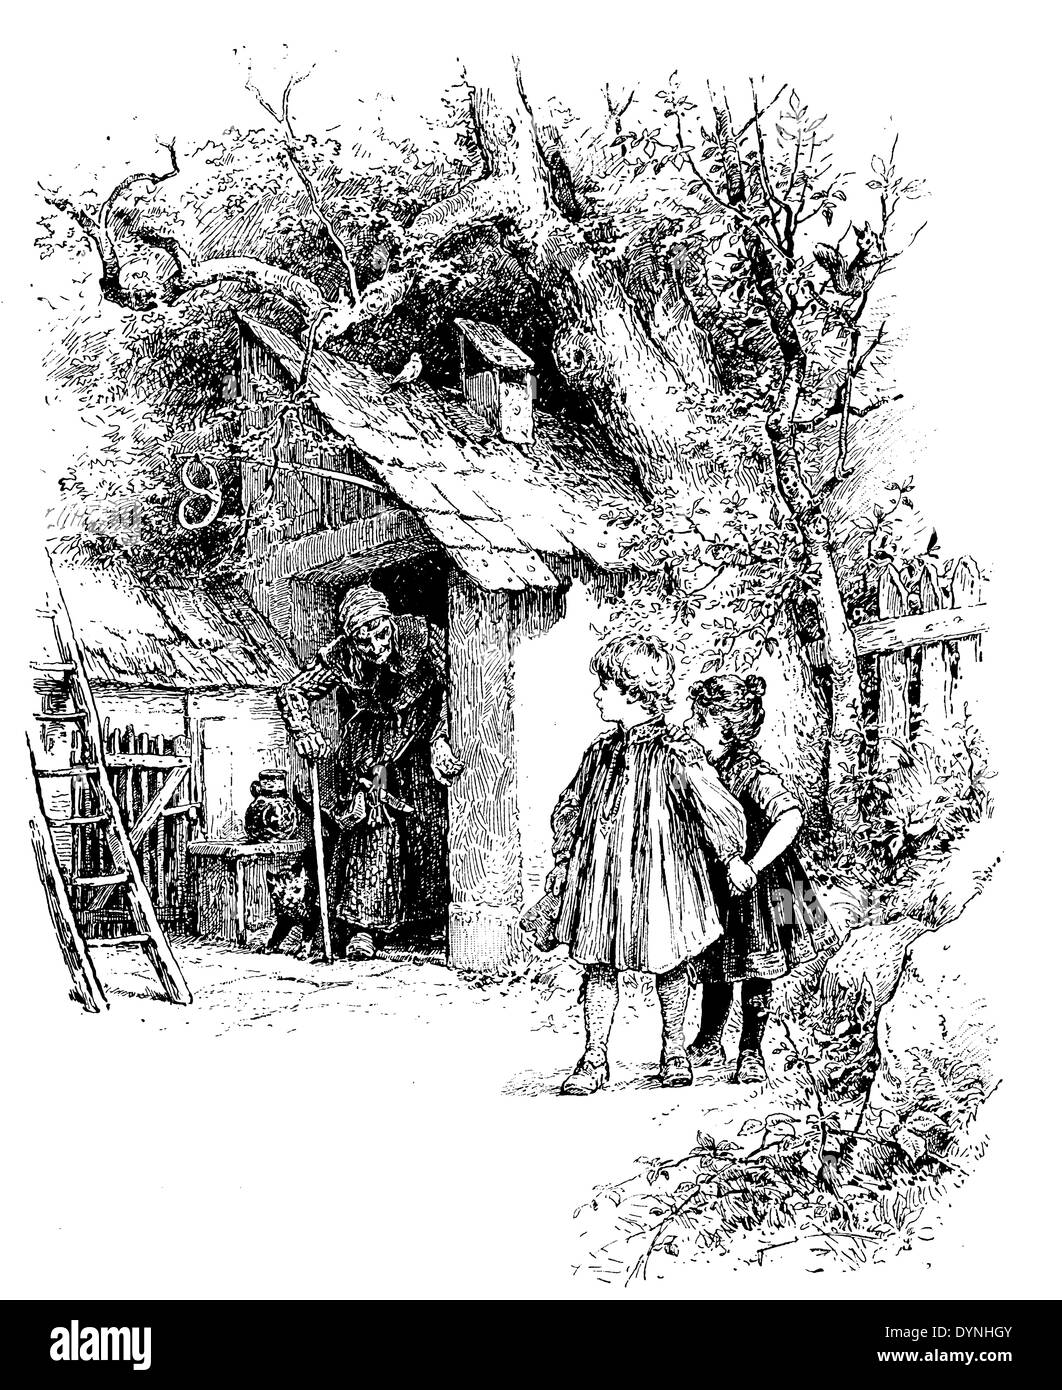 Hanse land Gretel are lured into the house of the witch, Grimm's Fairy Tales - Stock Image